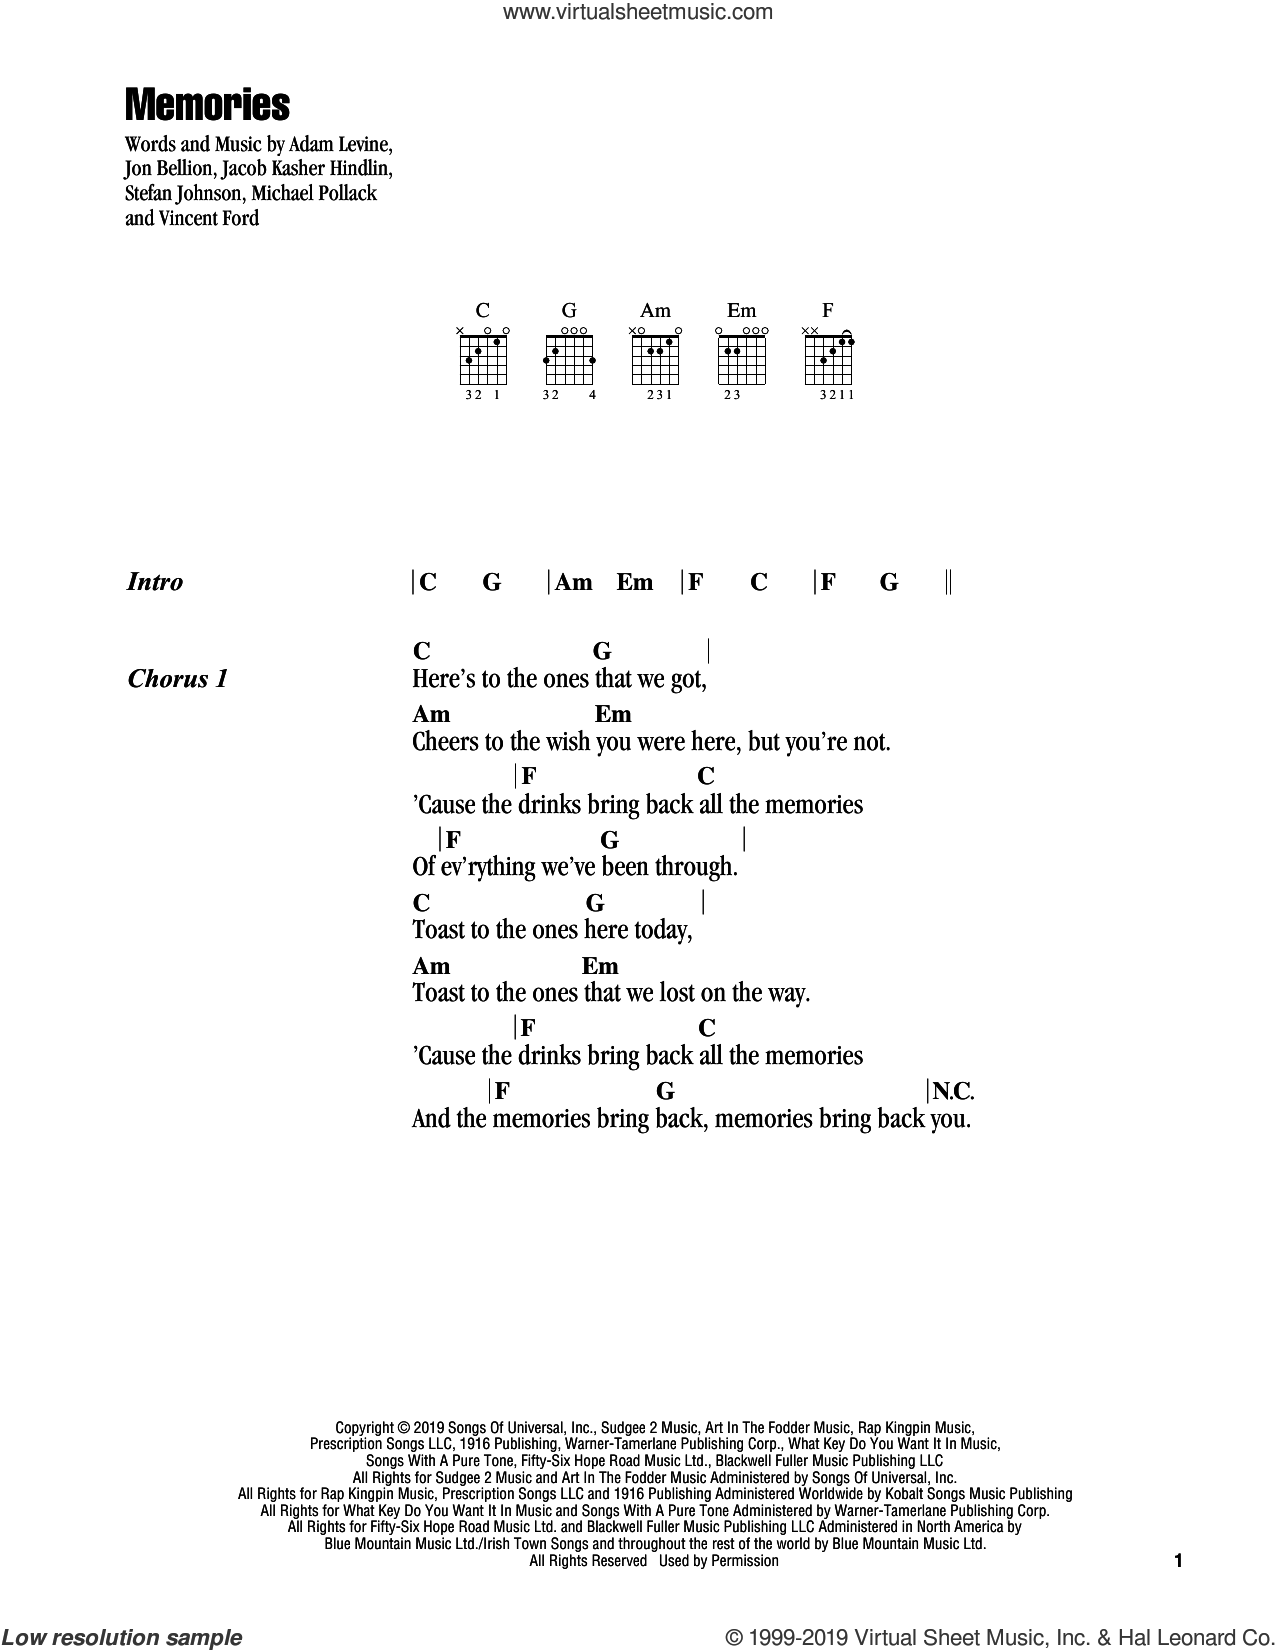 Memories sheet music for guitar (chords) by Maroon 5, Adam Levine, Jacob Kasher Hindlin, Jon Bellion, Michael Pollack, Stefan Johnson and Vincent Ford, intermediate skill level